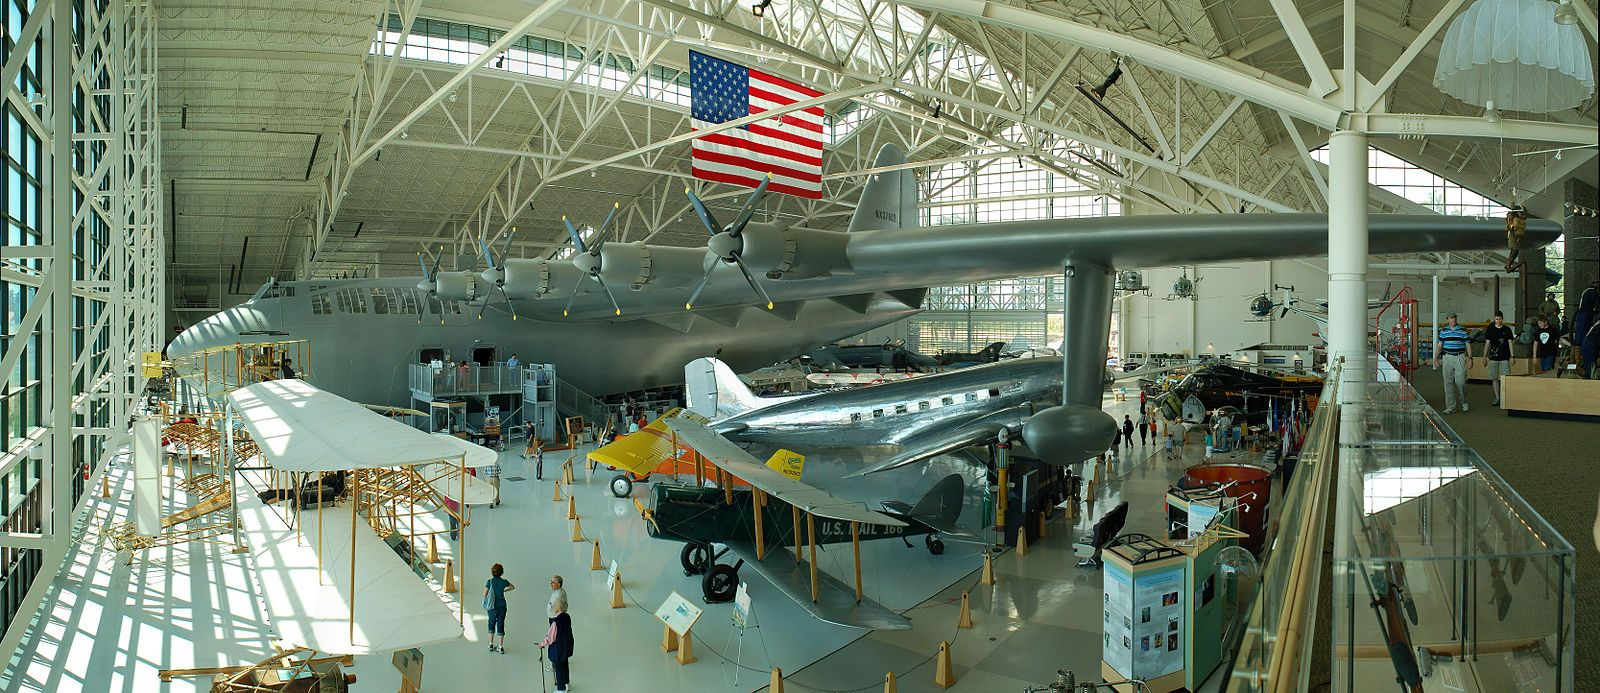 Evergreen Aviation & Space Museum Wikipedia (With images